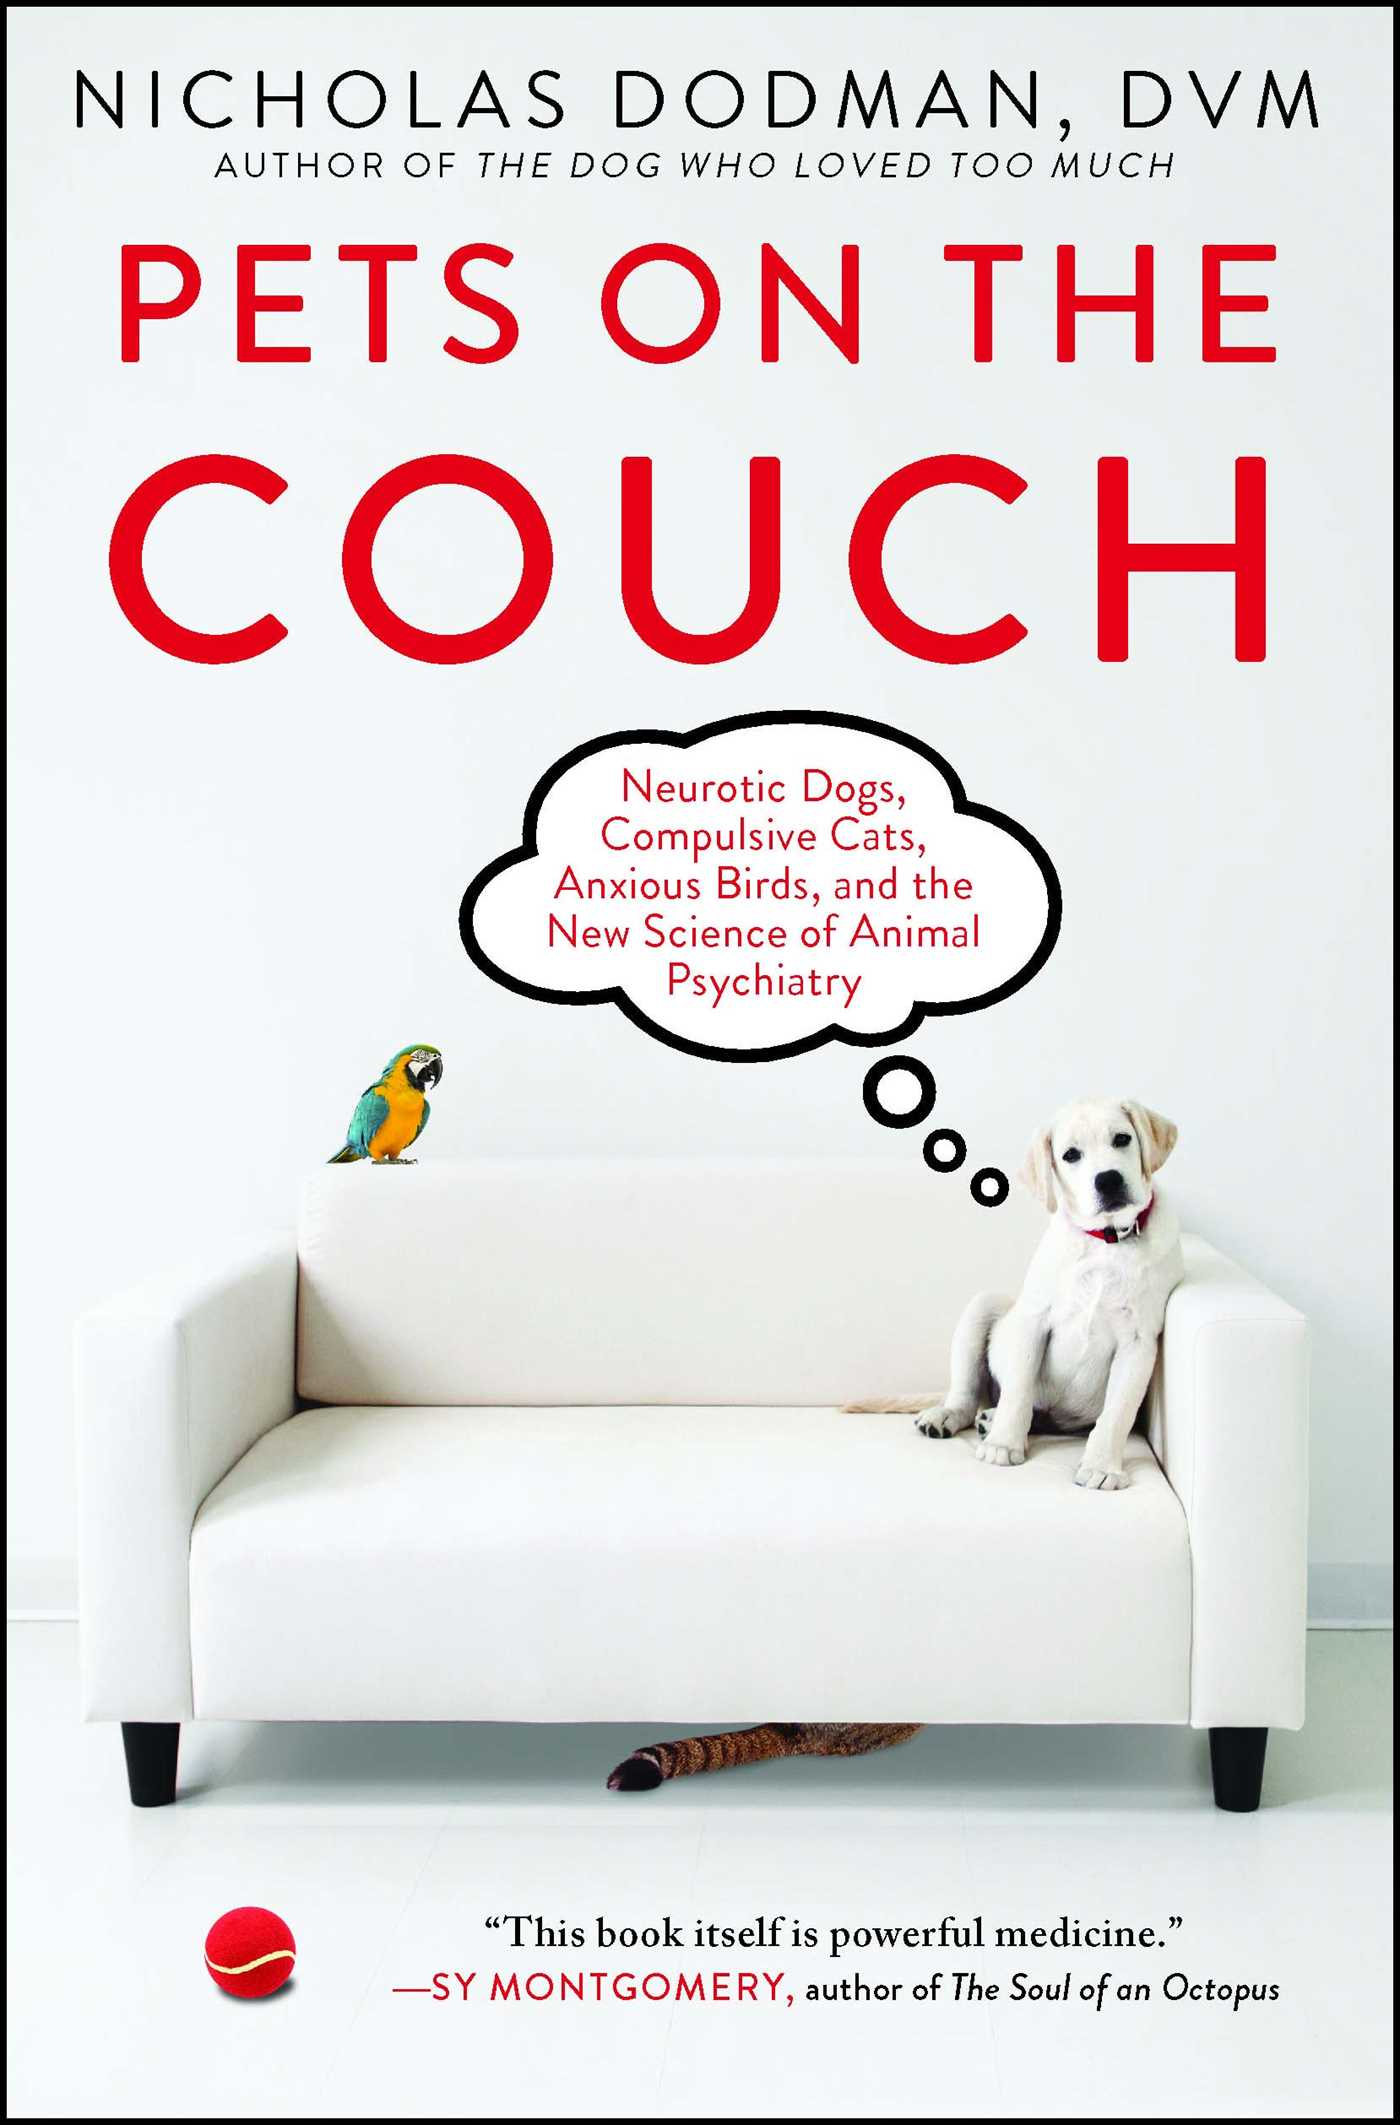 Pets on the couch 9781476749044 hr